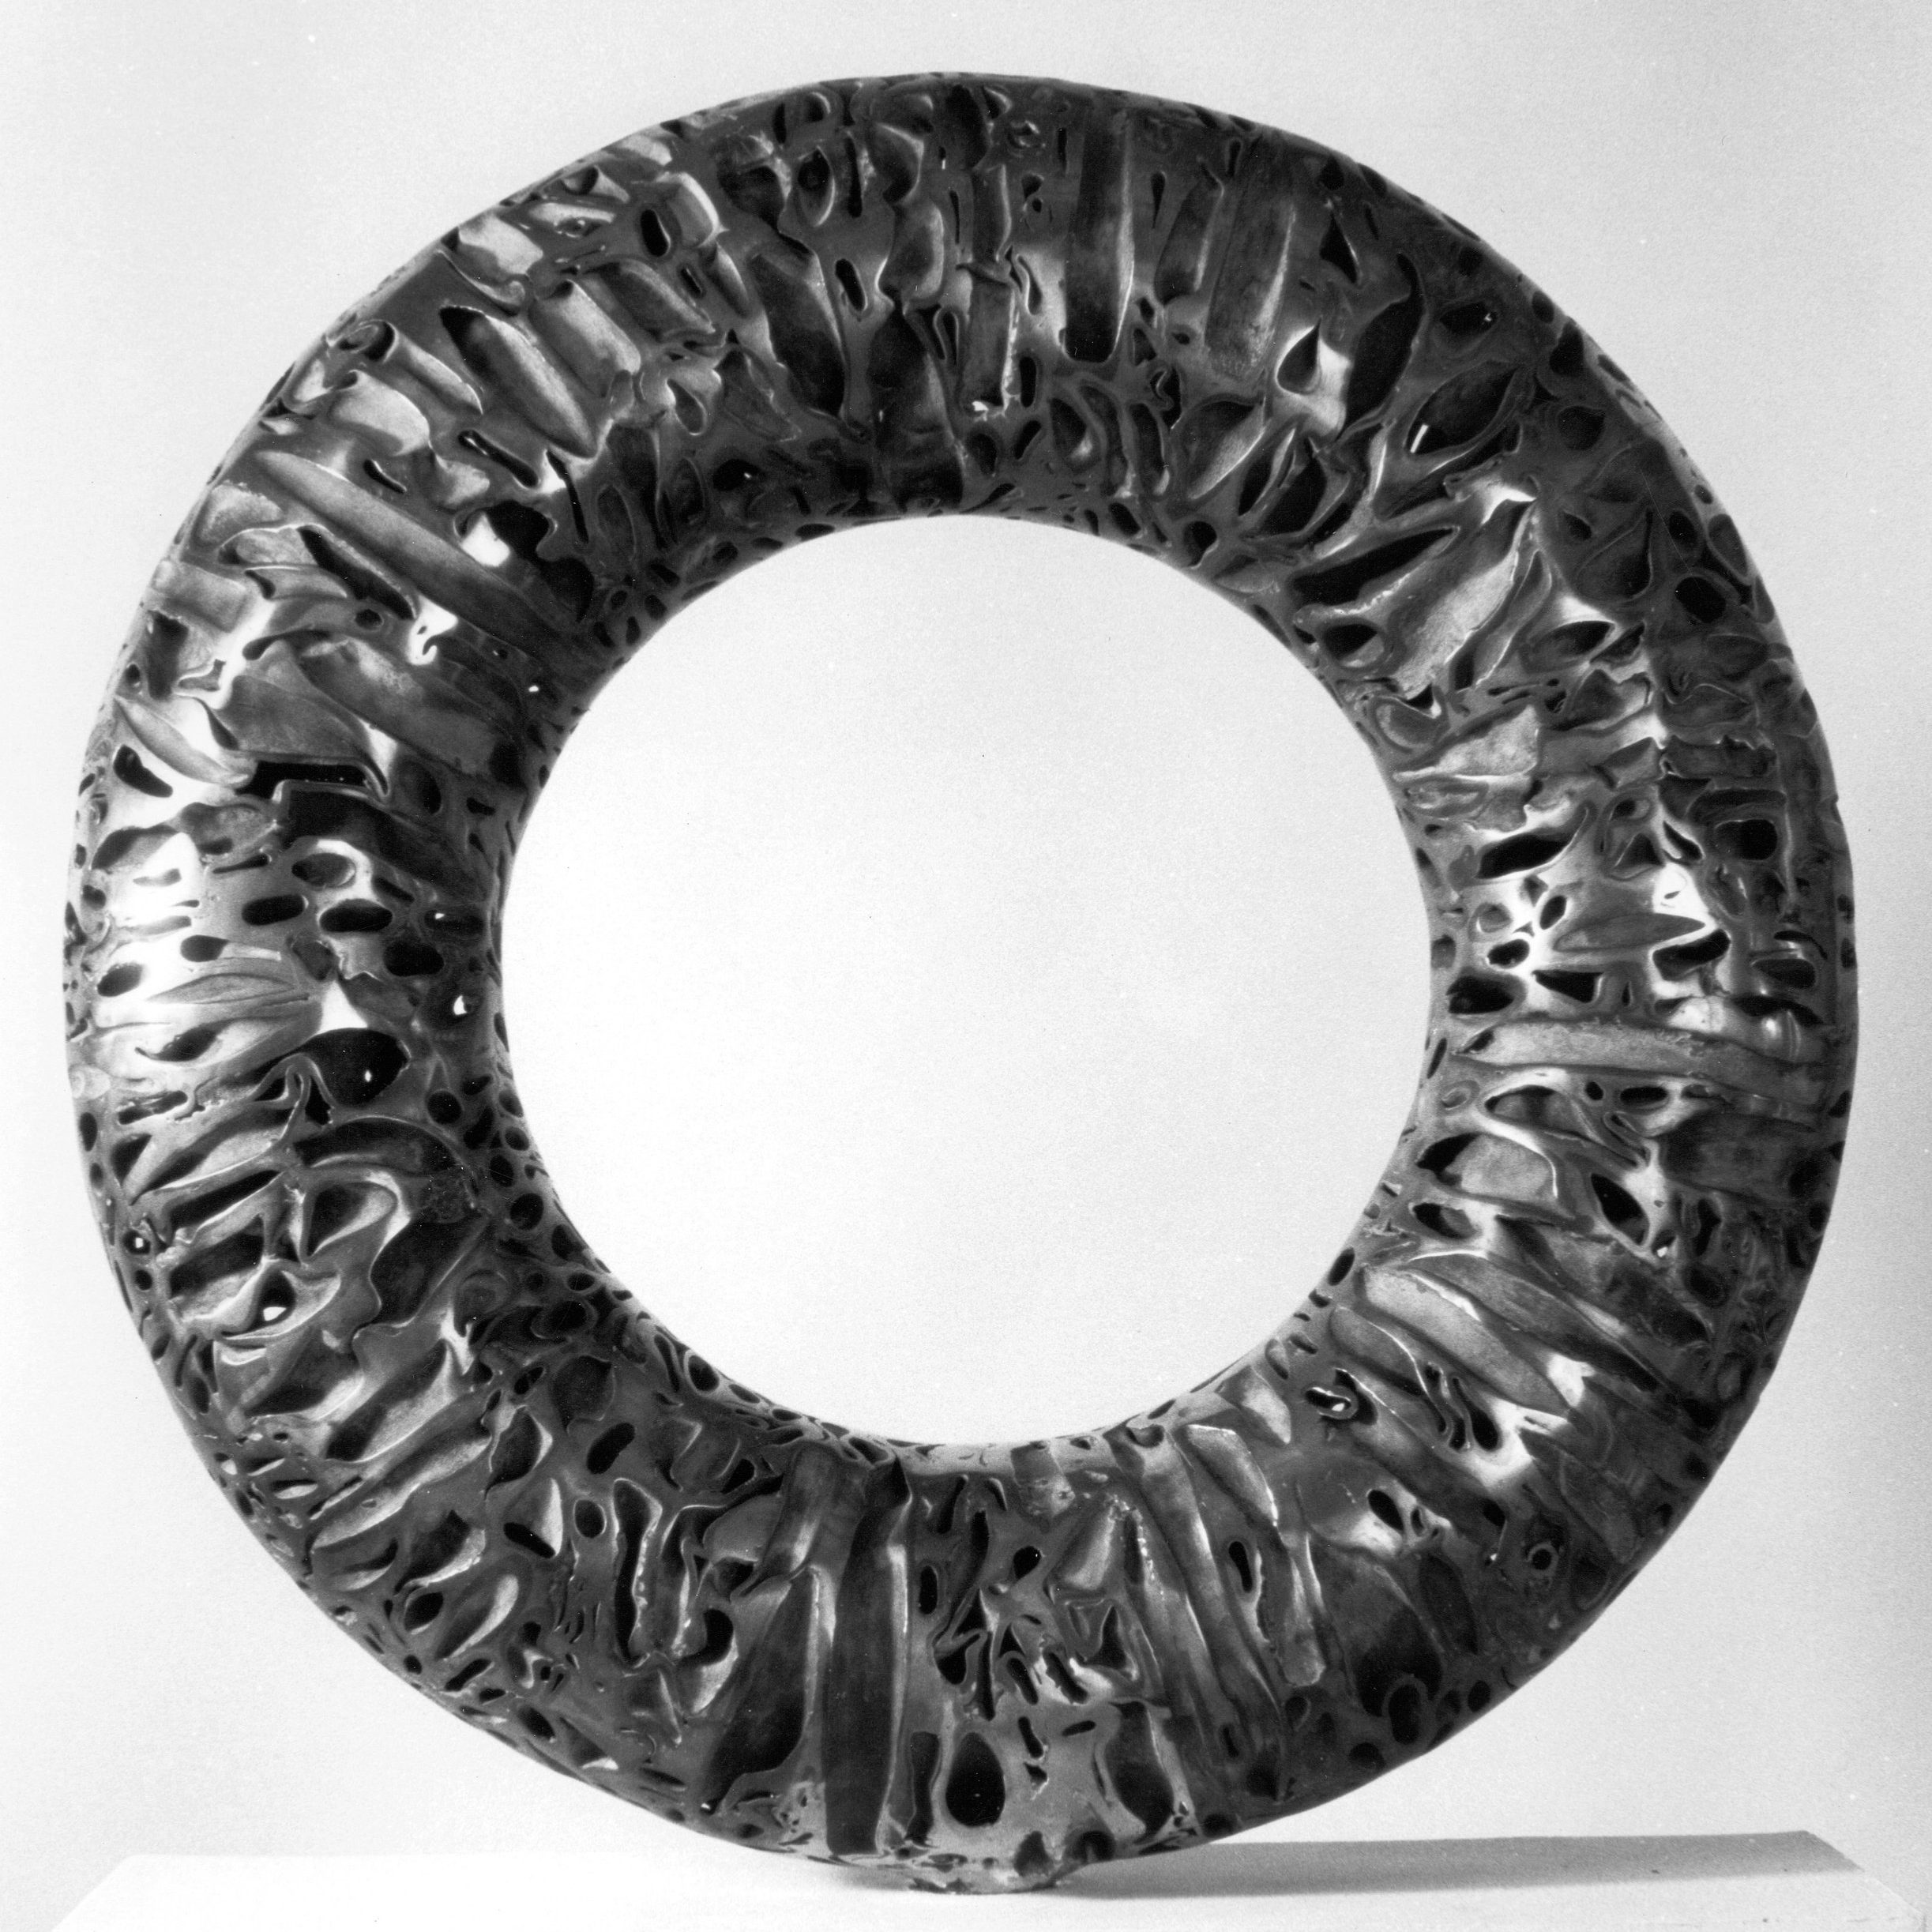 """O"" by Michael Malpass, 1987. 32"" diameter sliced copper pipe and bronze. Installation at the Ocean County Library, Toms River, NY."